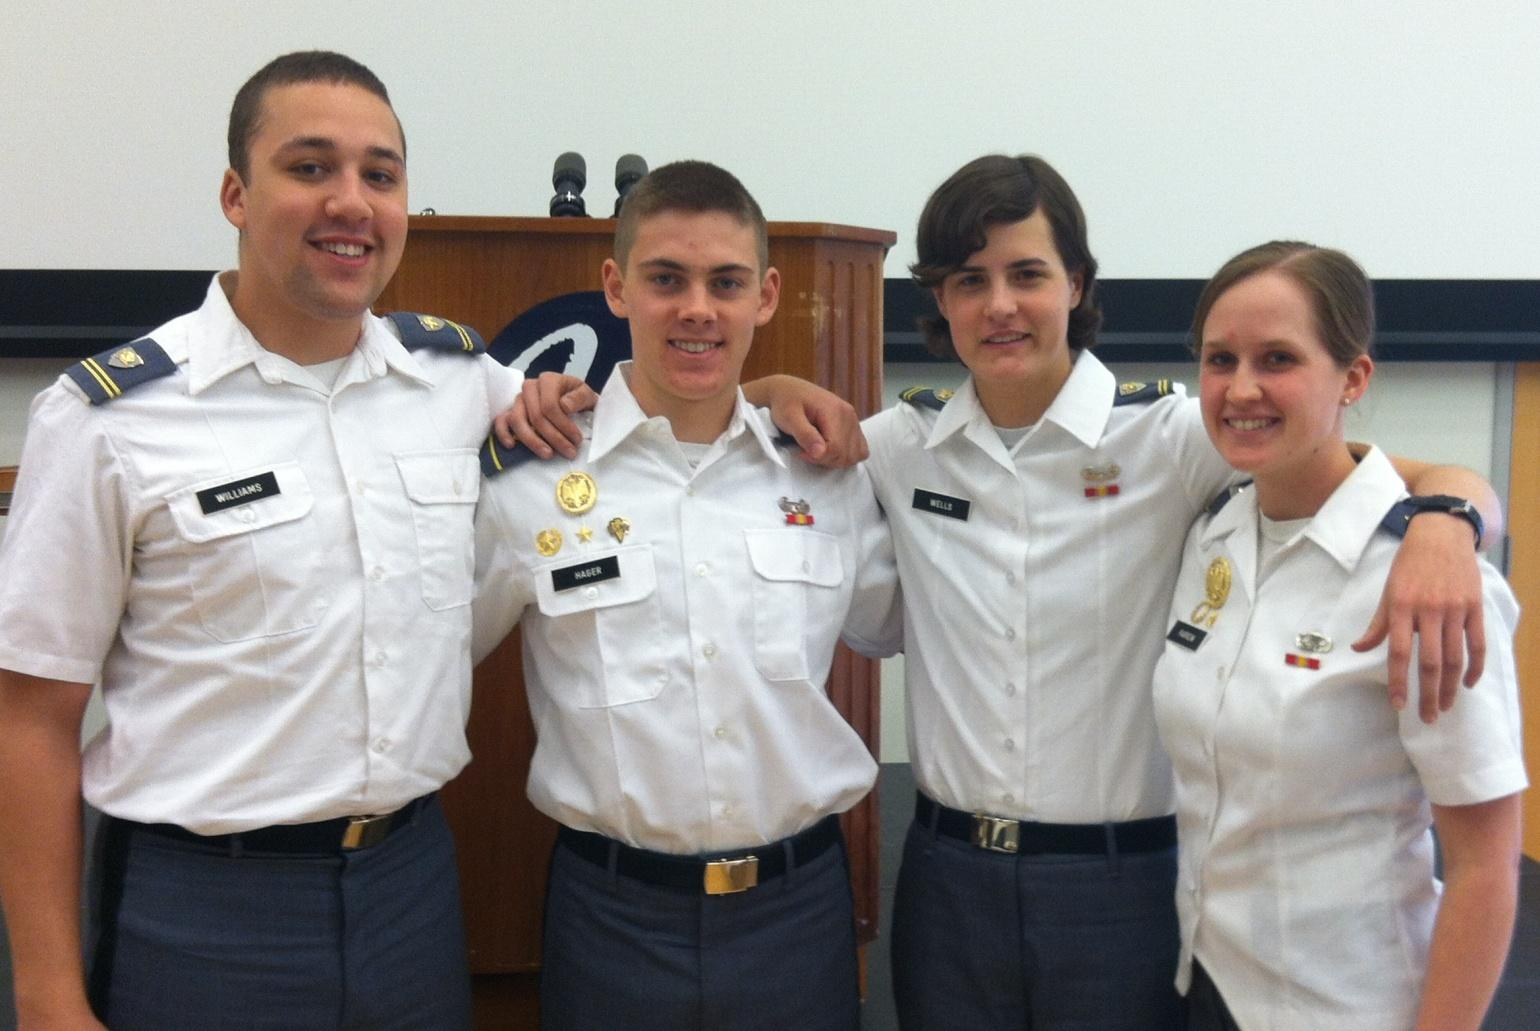 Cadets Matt Williams ('15), Matt Hager ('16), Melissa Wells ('15), and Judy Farrow ('15) recently presented papers at the Ninth Annual Conference on the Teaching of Writing, hosted by the University of Connecticut.